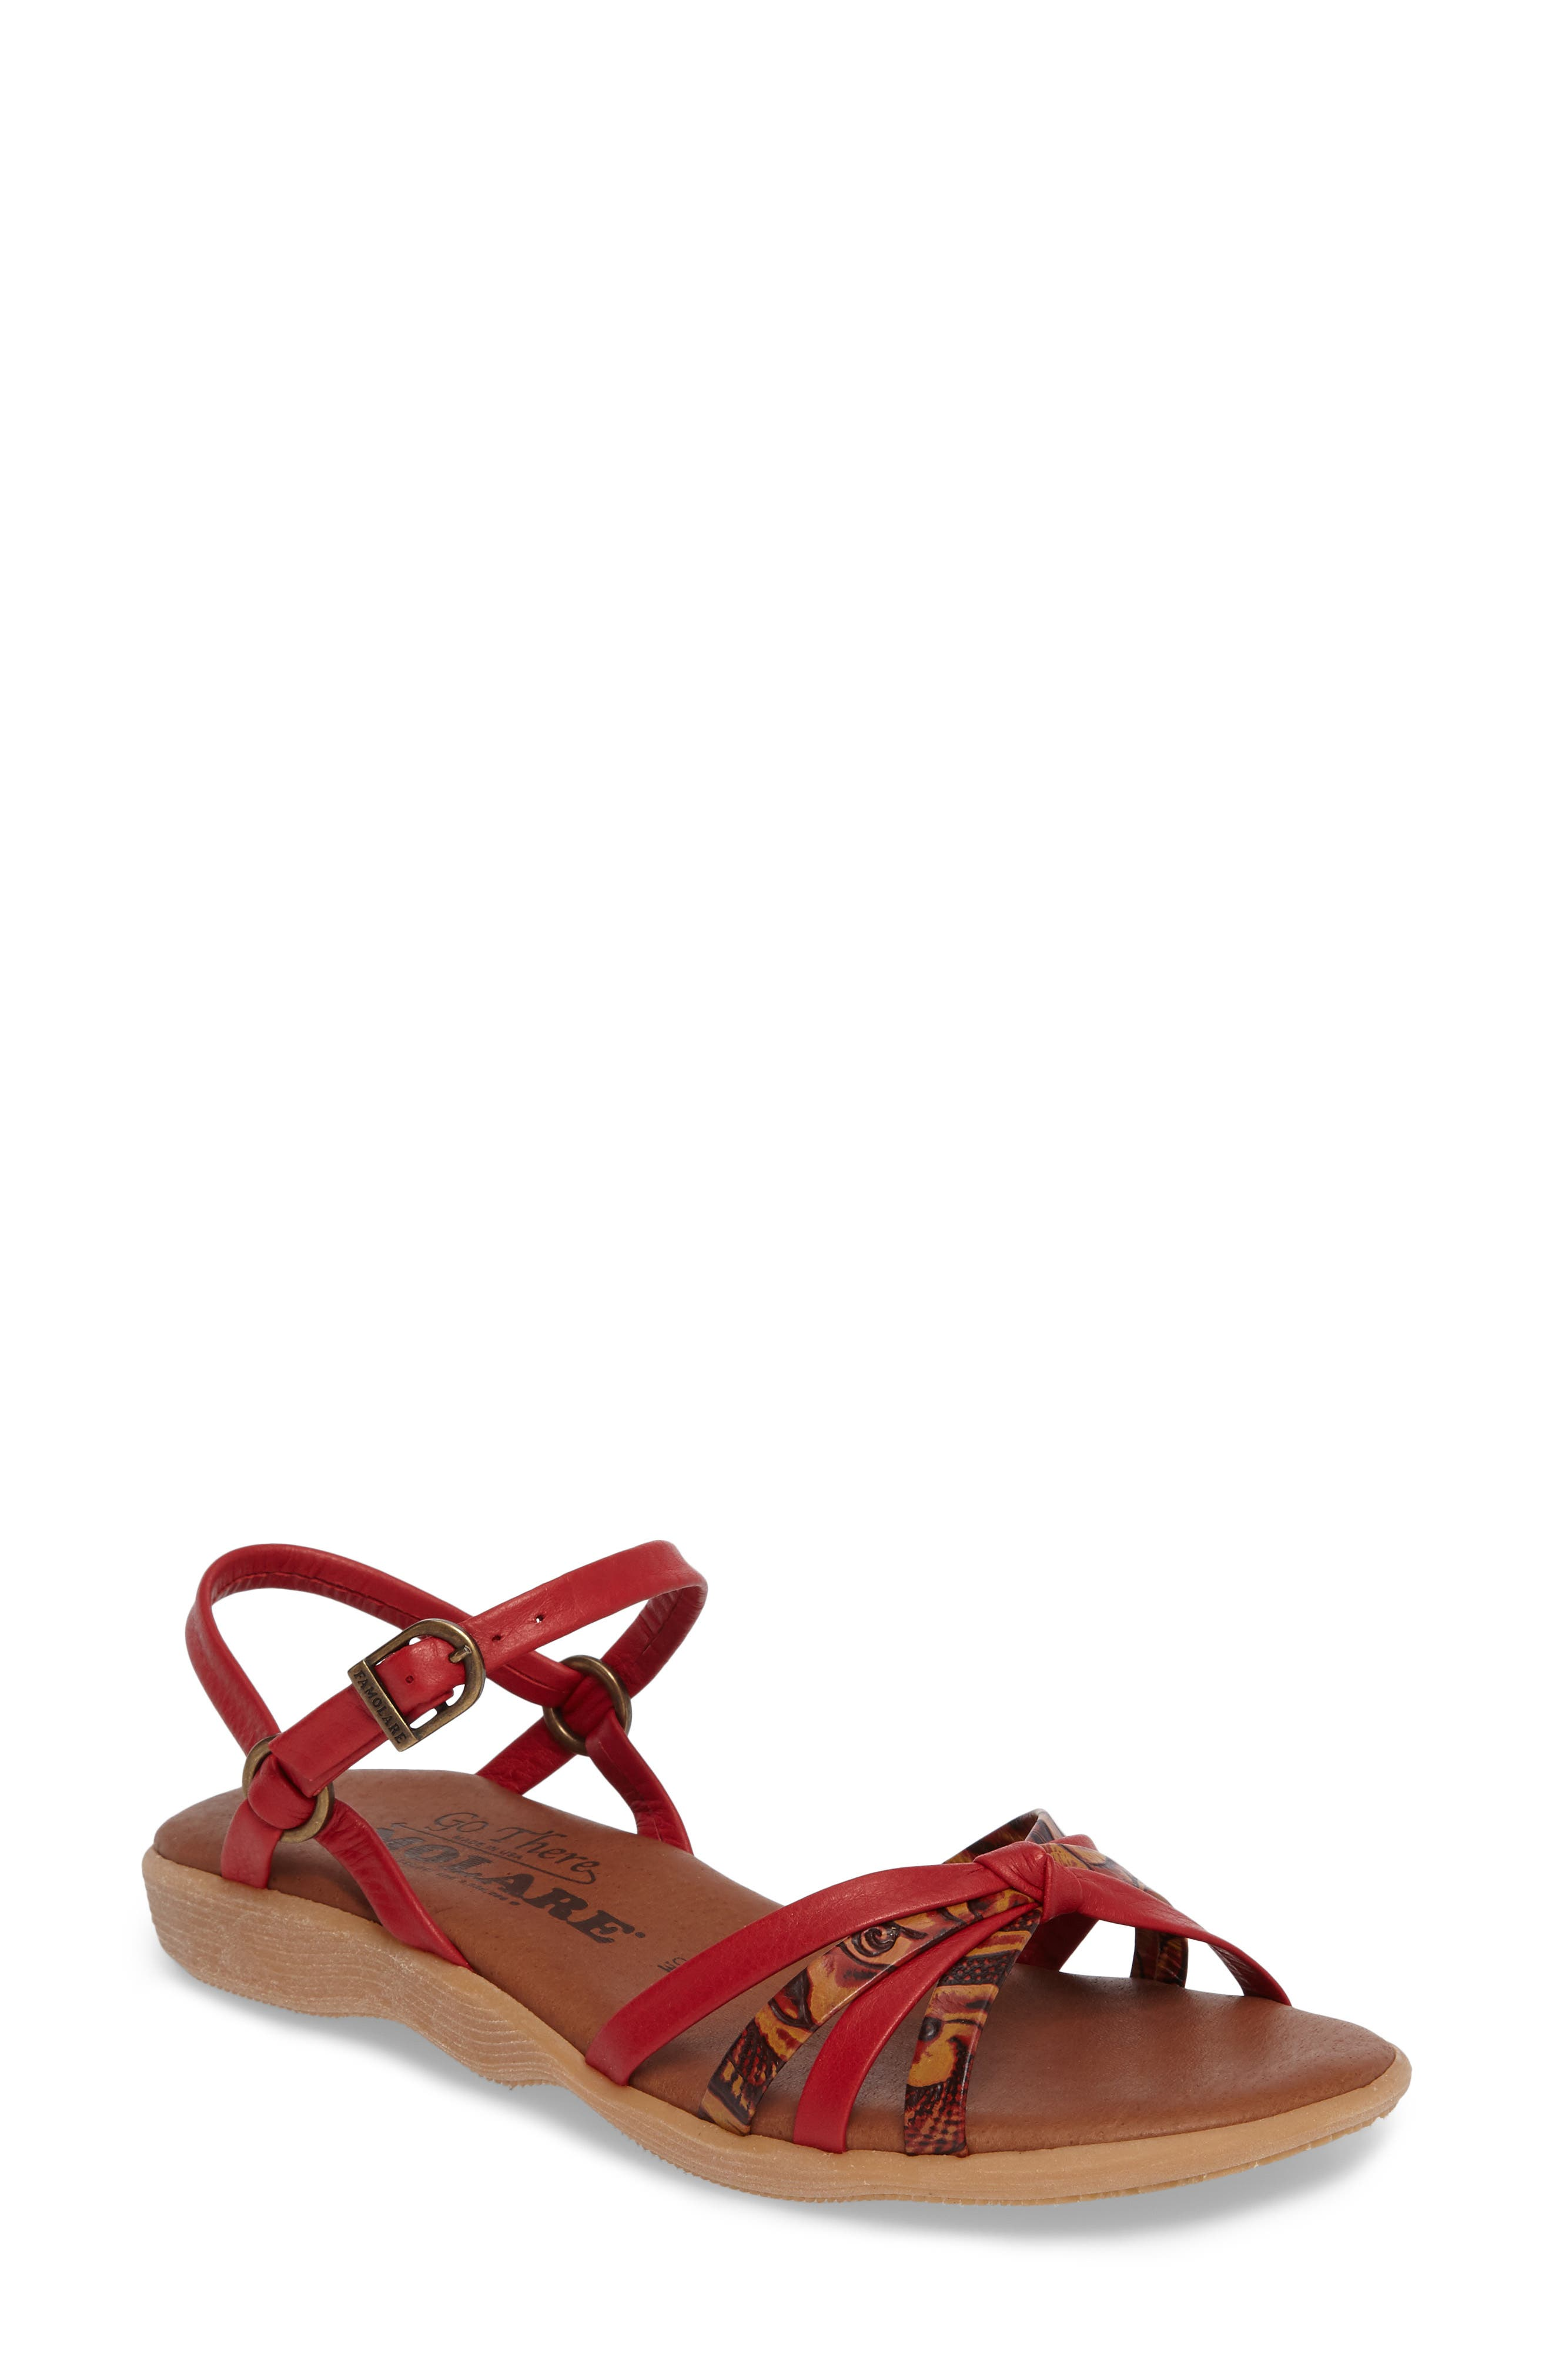 Strap Music Knotted Sandal,                             Main thumbnail 1, color,                             MULTI CORAL LEATHER